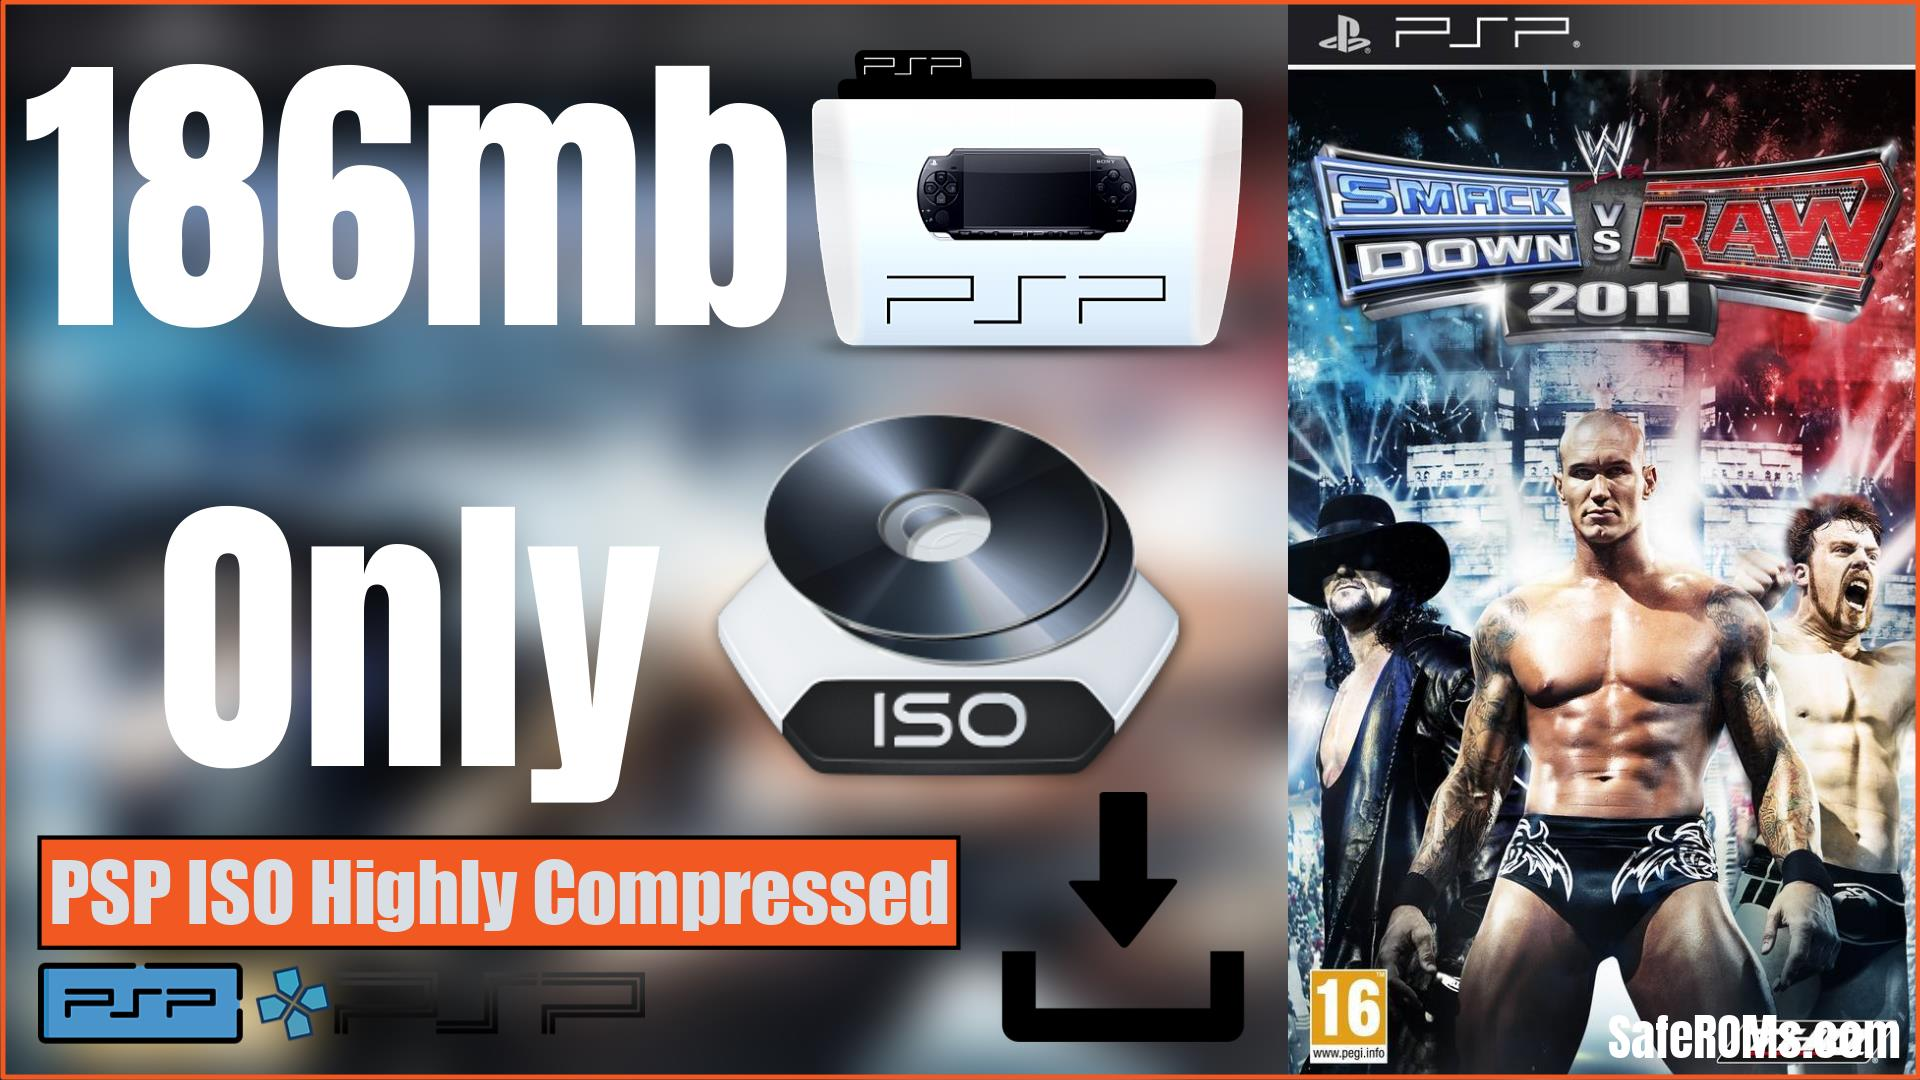 WWE 2K11 PSP ISO Highly Compressed Download